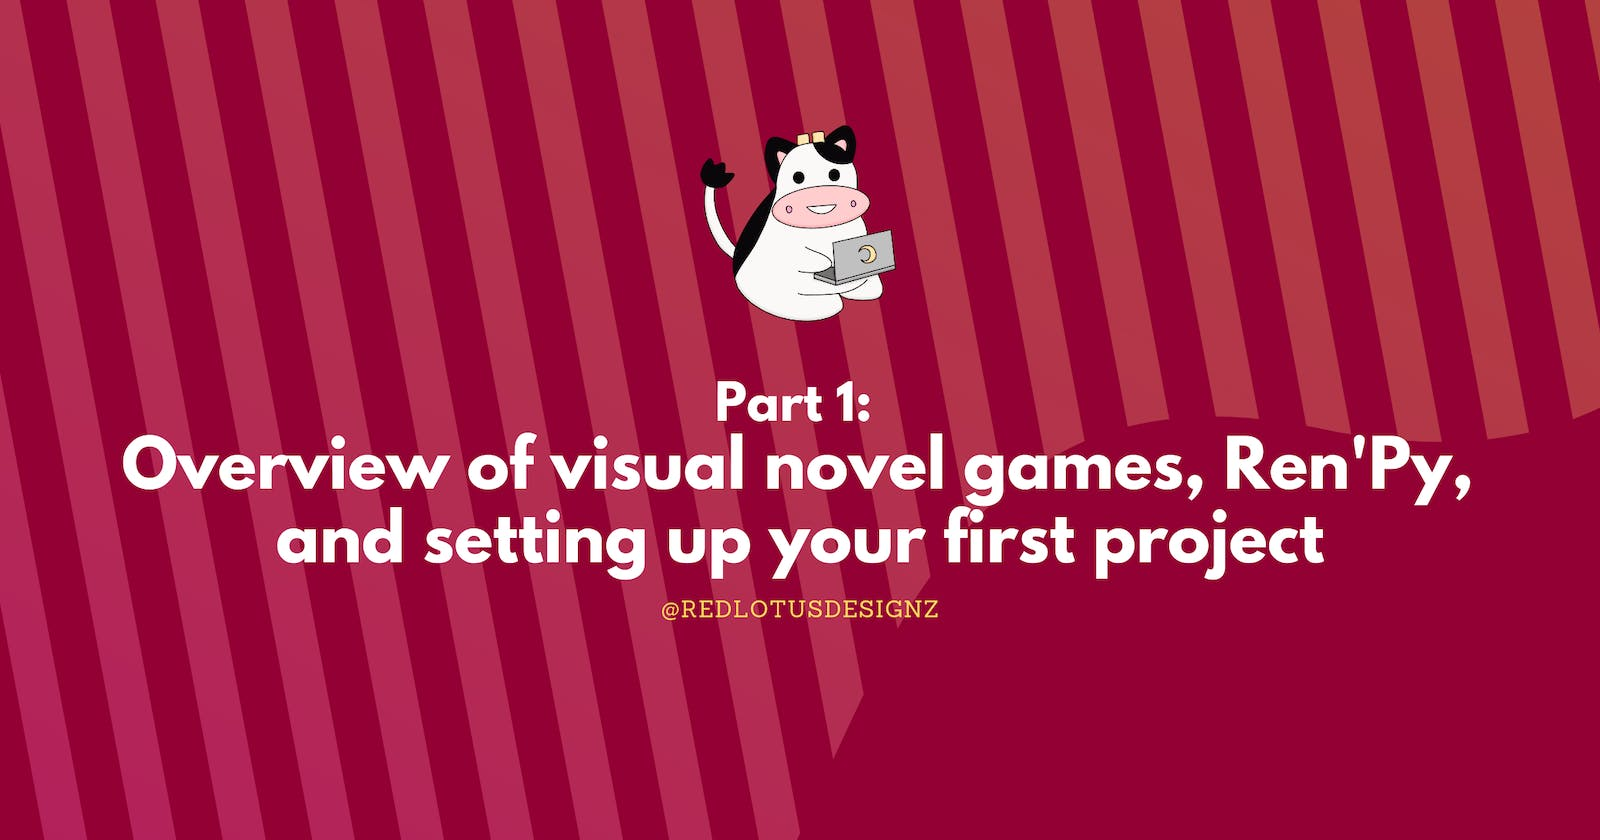 Overview of visual novel games, Ren'Py and setting up your first project